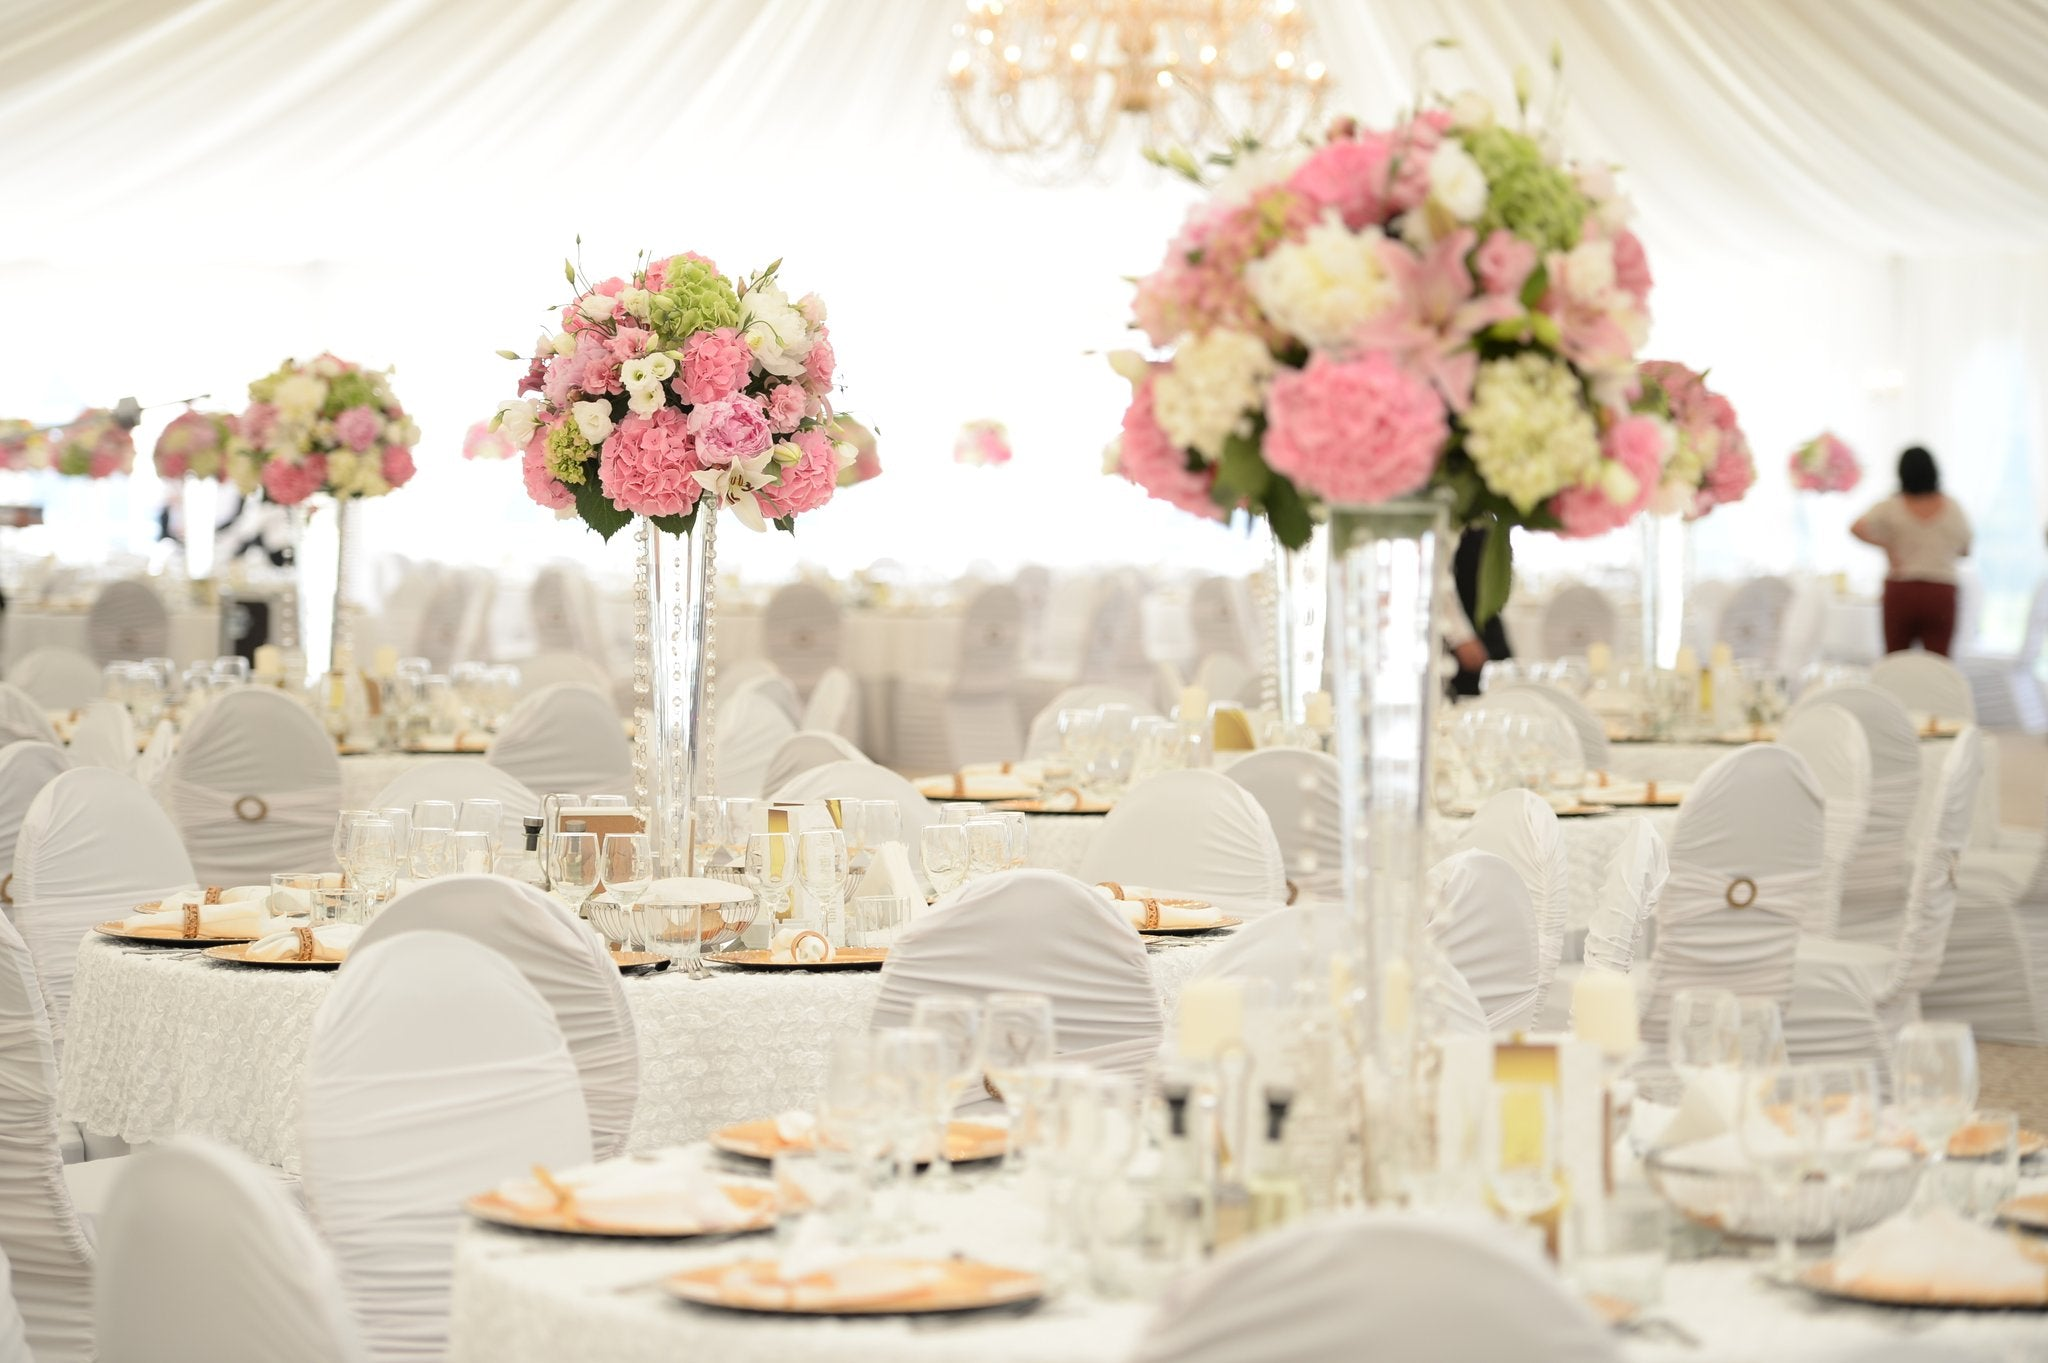 dinner table with tablecloths, chair covers and chair sashes